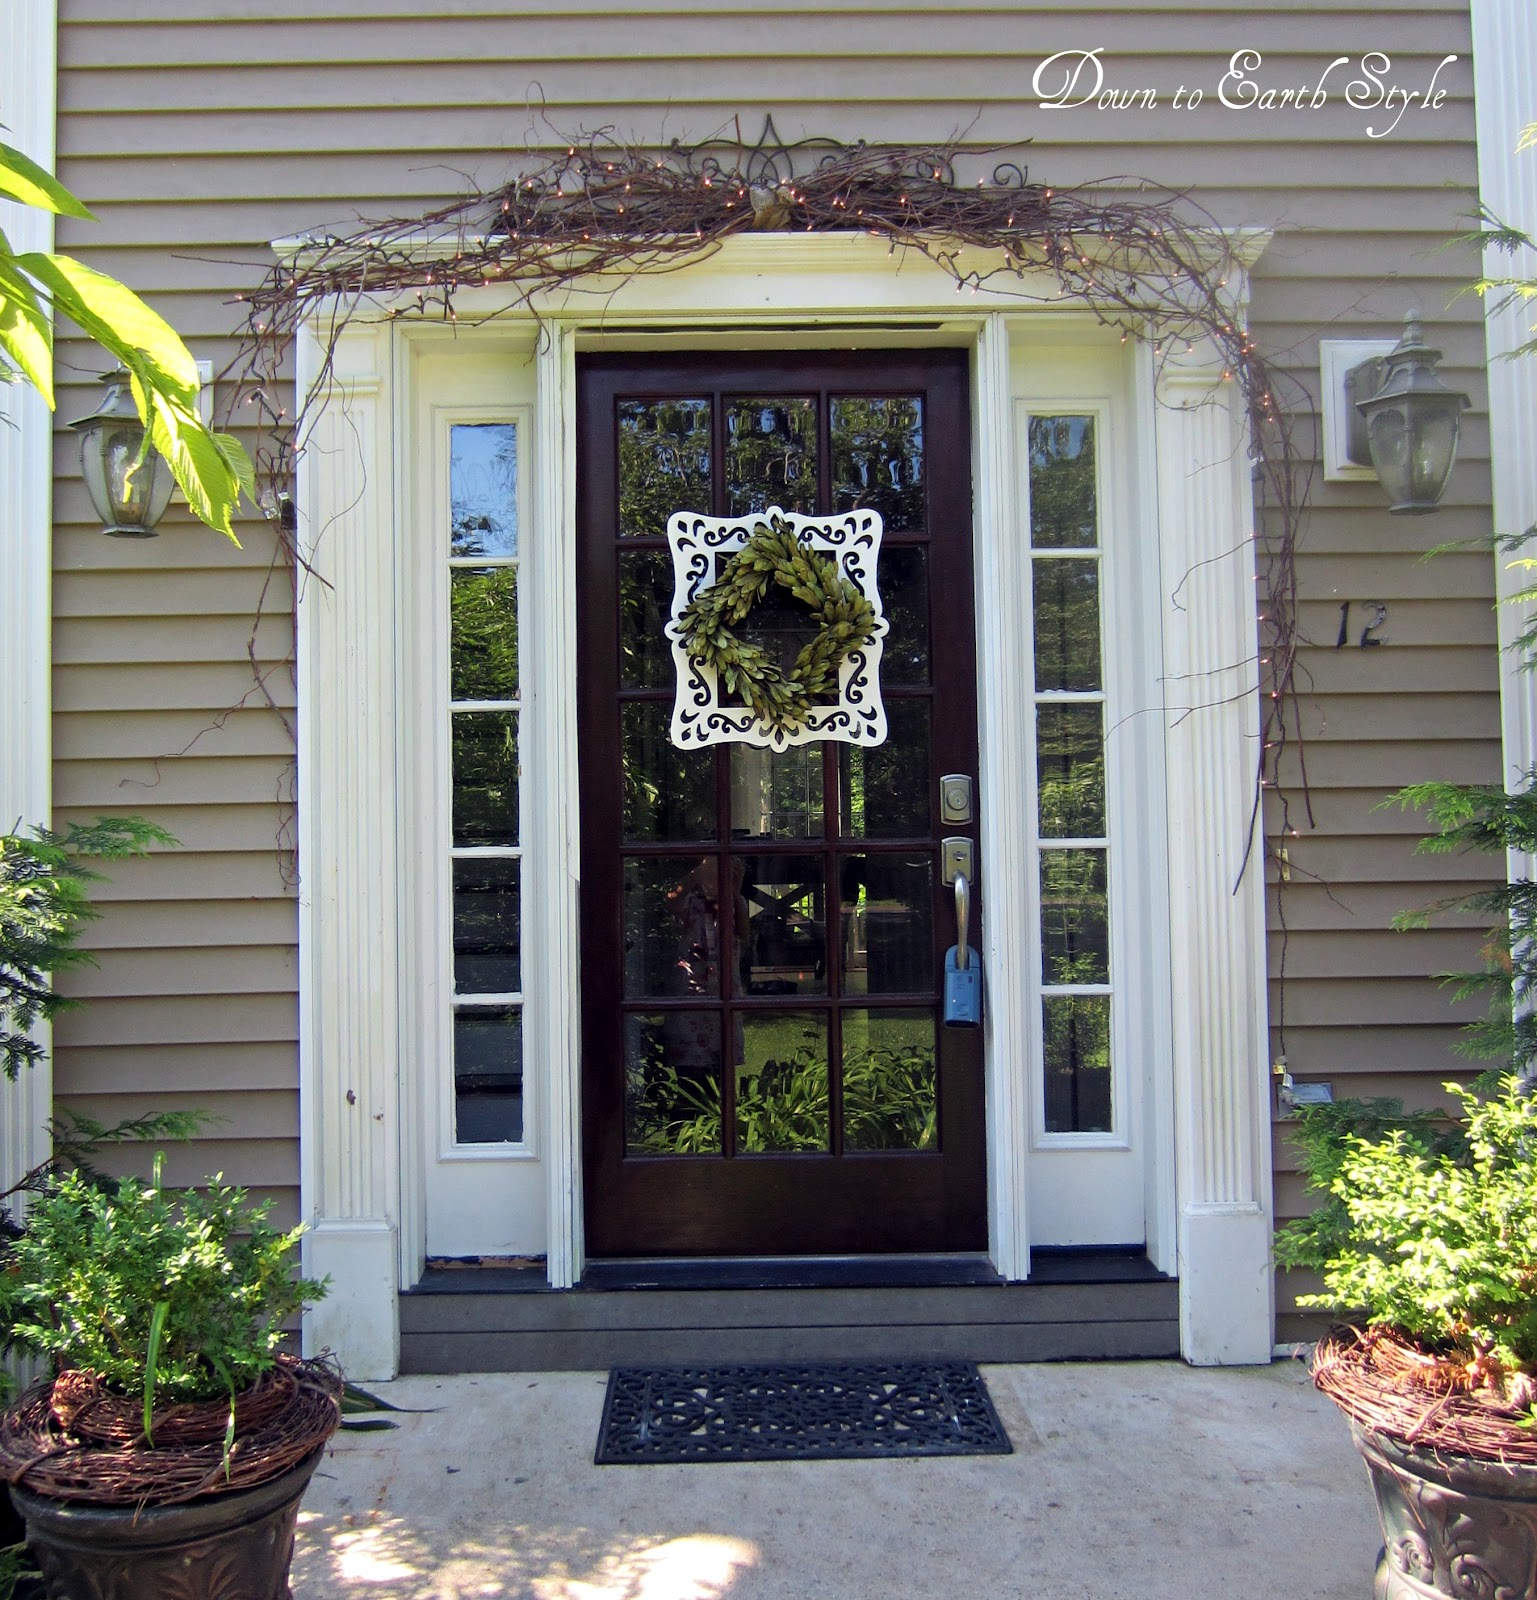 Down to earth style entry wreath frame for Entry door with frame